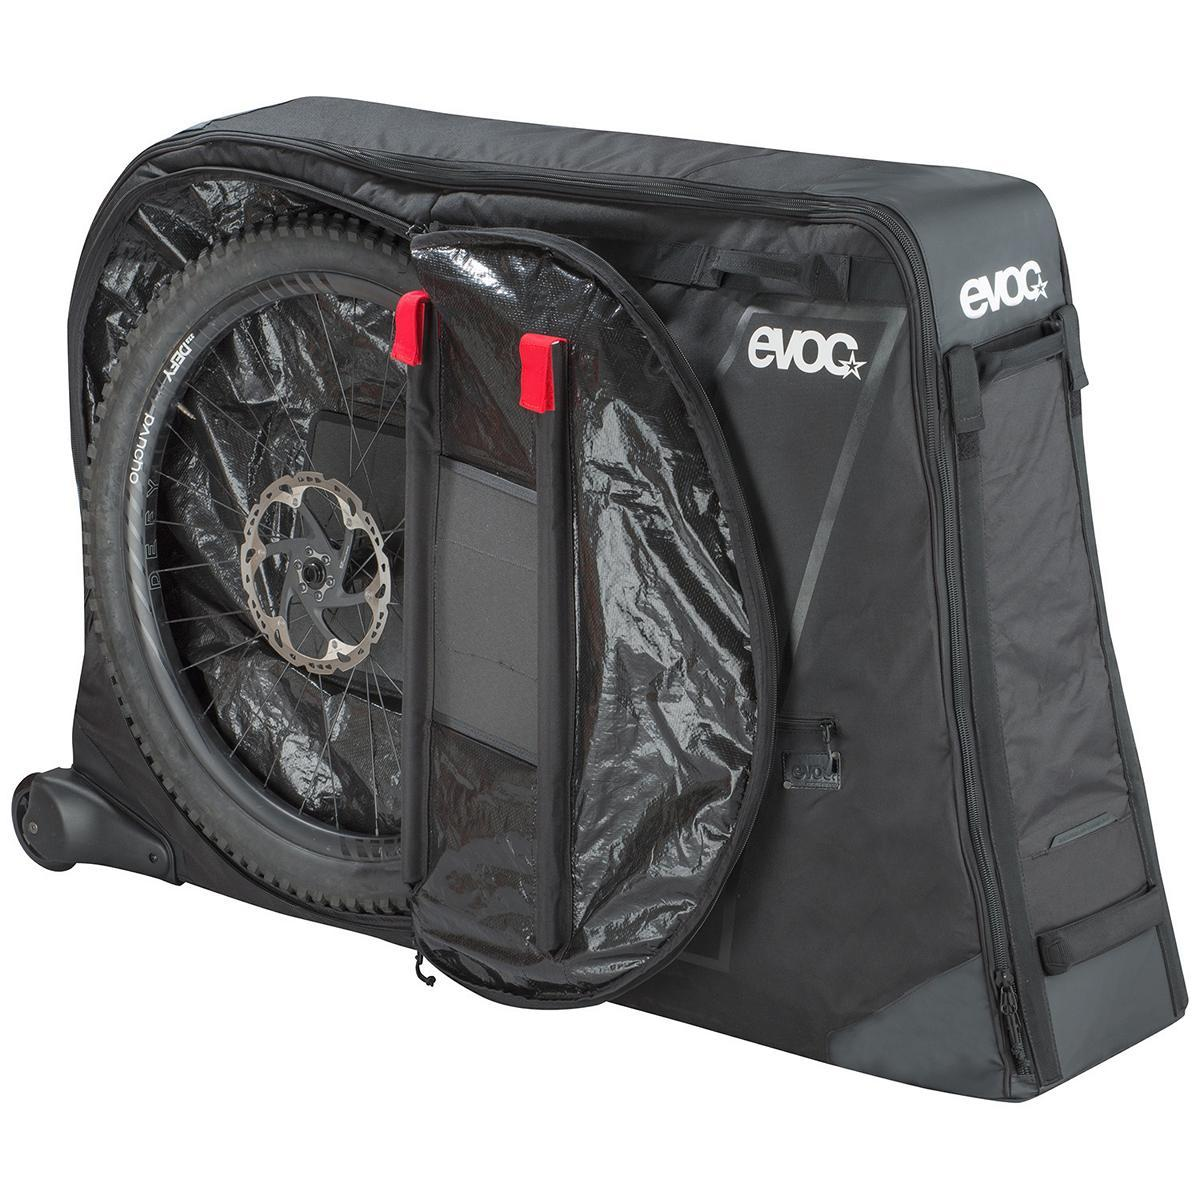 Evoc Bike Bag - Red